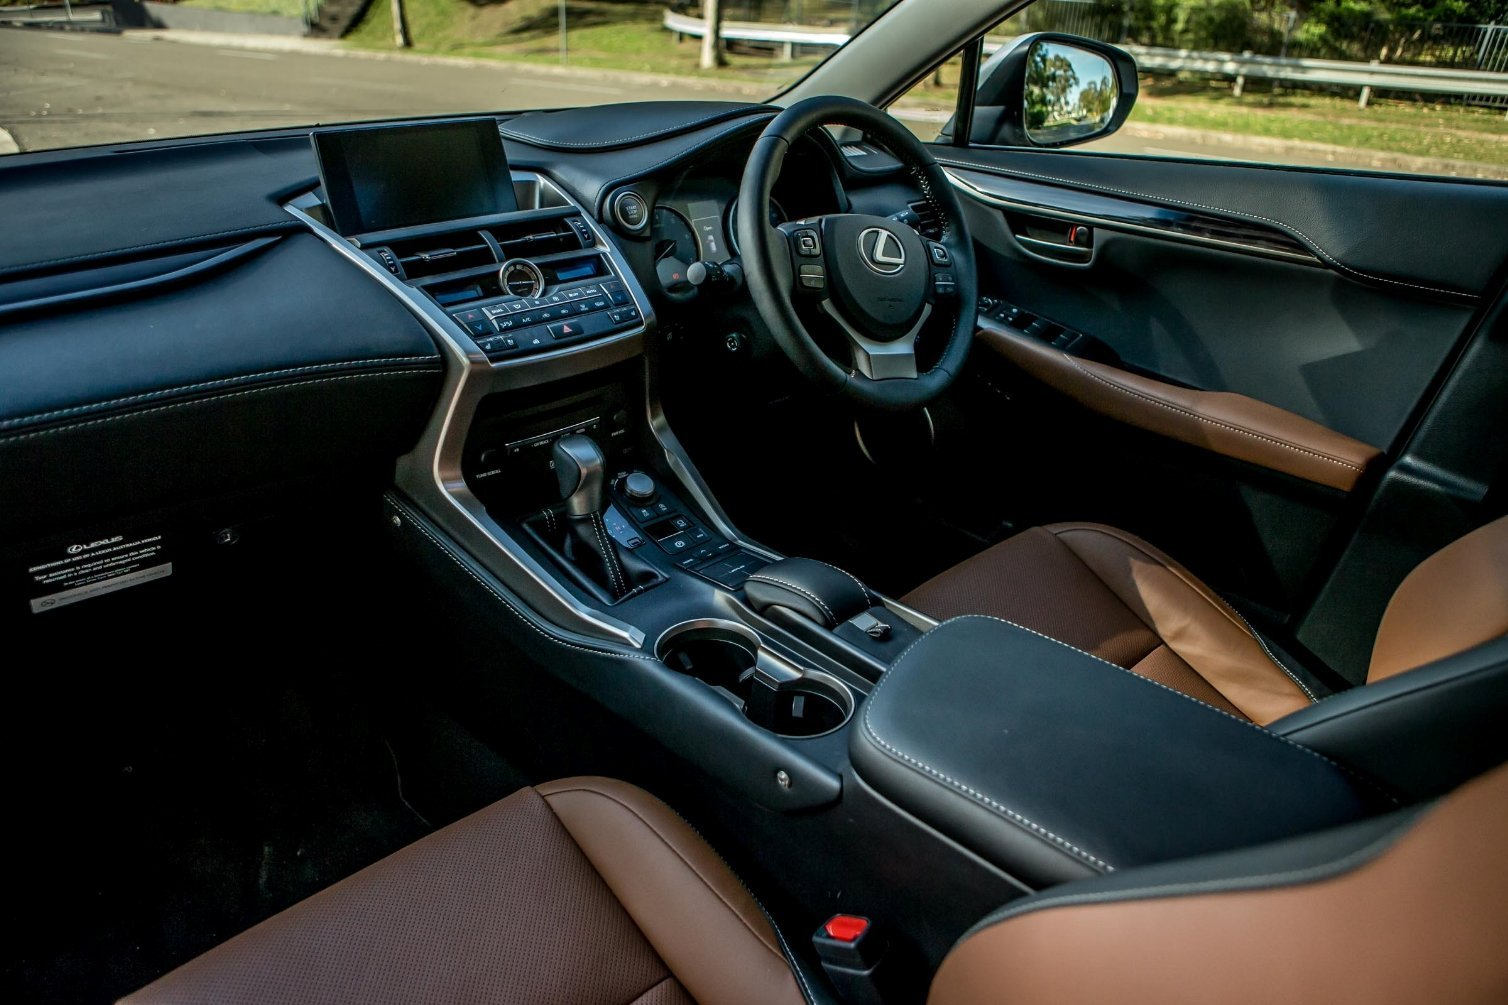 lexus imparting value to luxury Check out the lexus ls review at caranddrivercom use our car buying guide to research lexus ls prices back to lexus lexus ls editors' rating price starting at $75,995 luxury, on mute no matter the trim or the powertrain.